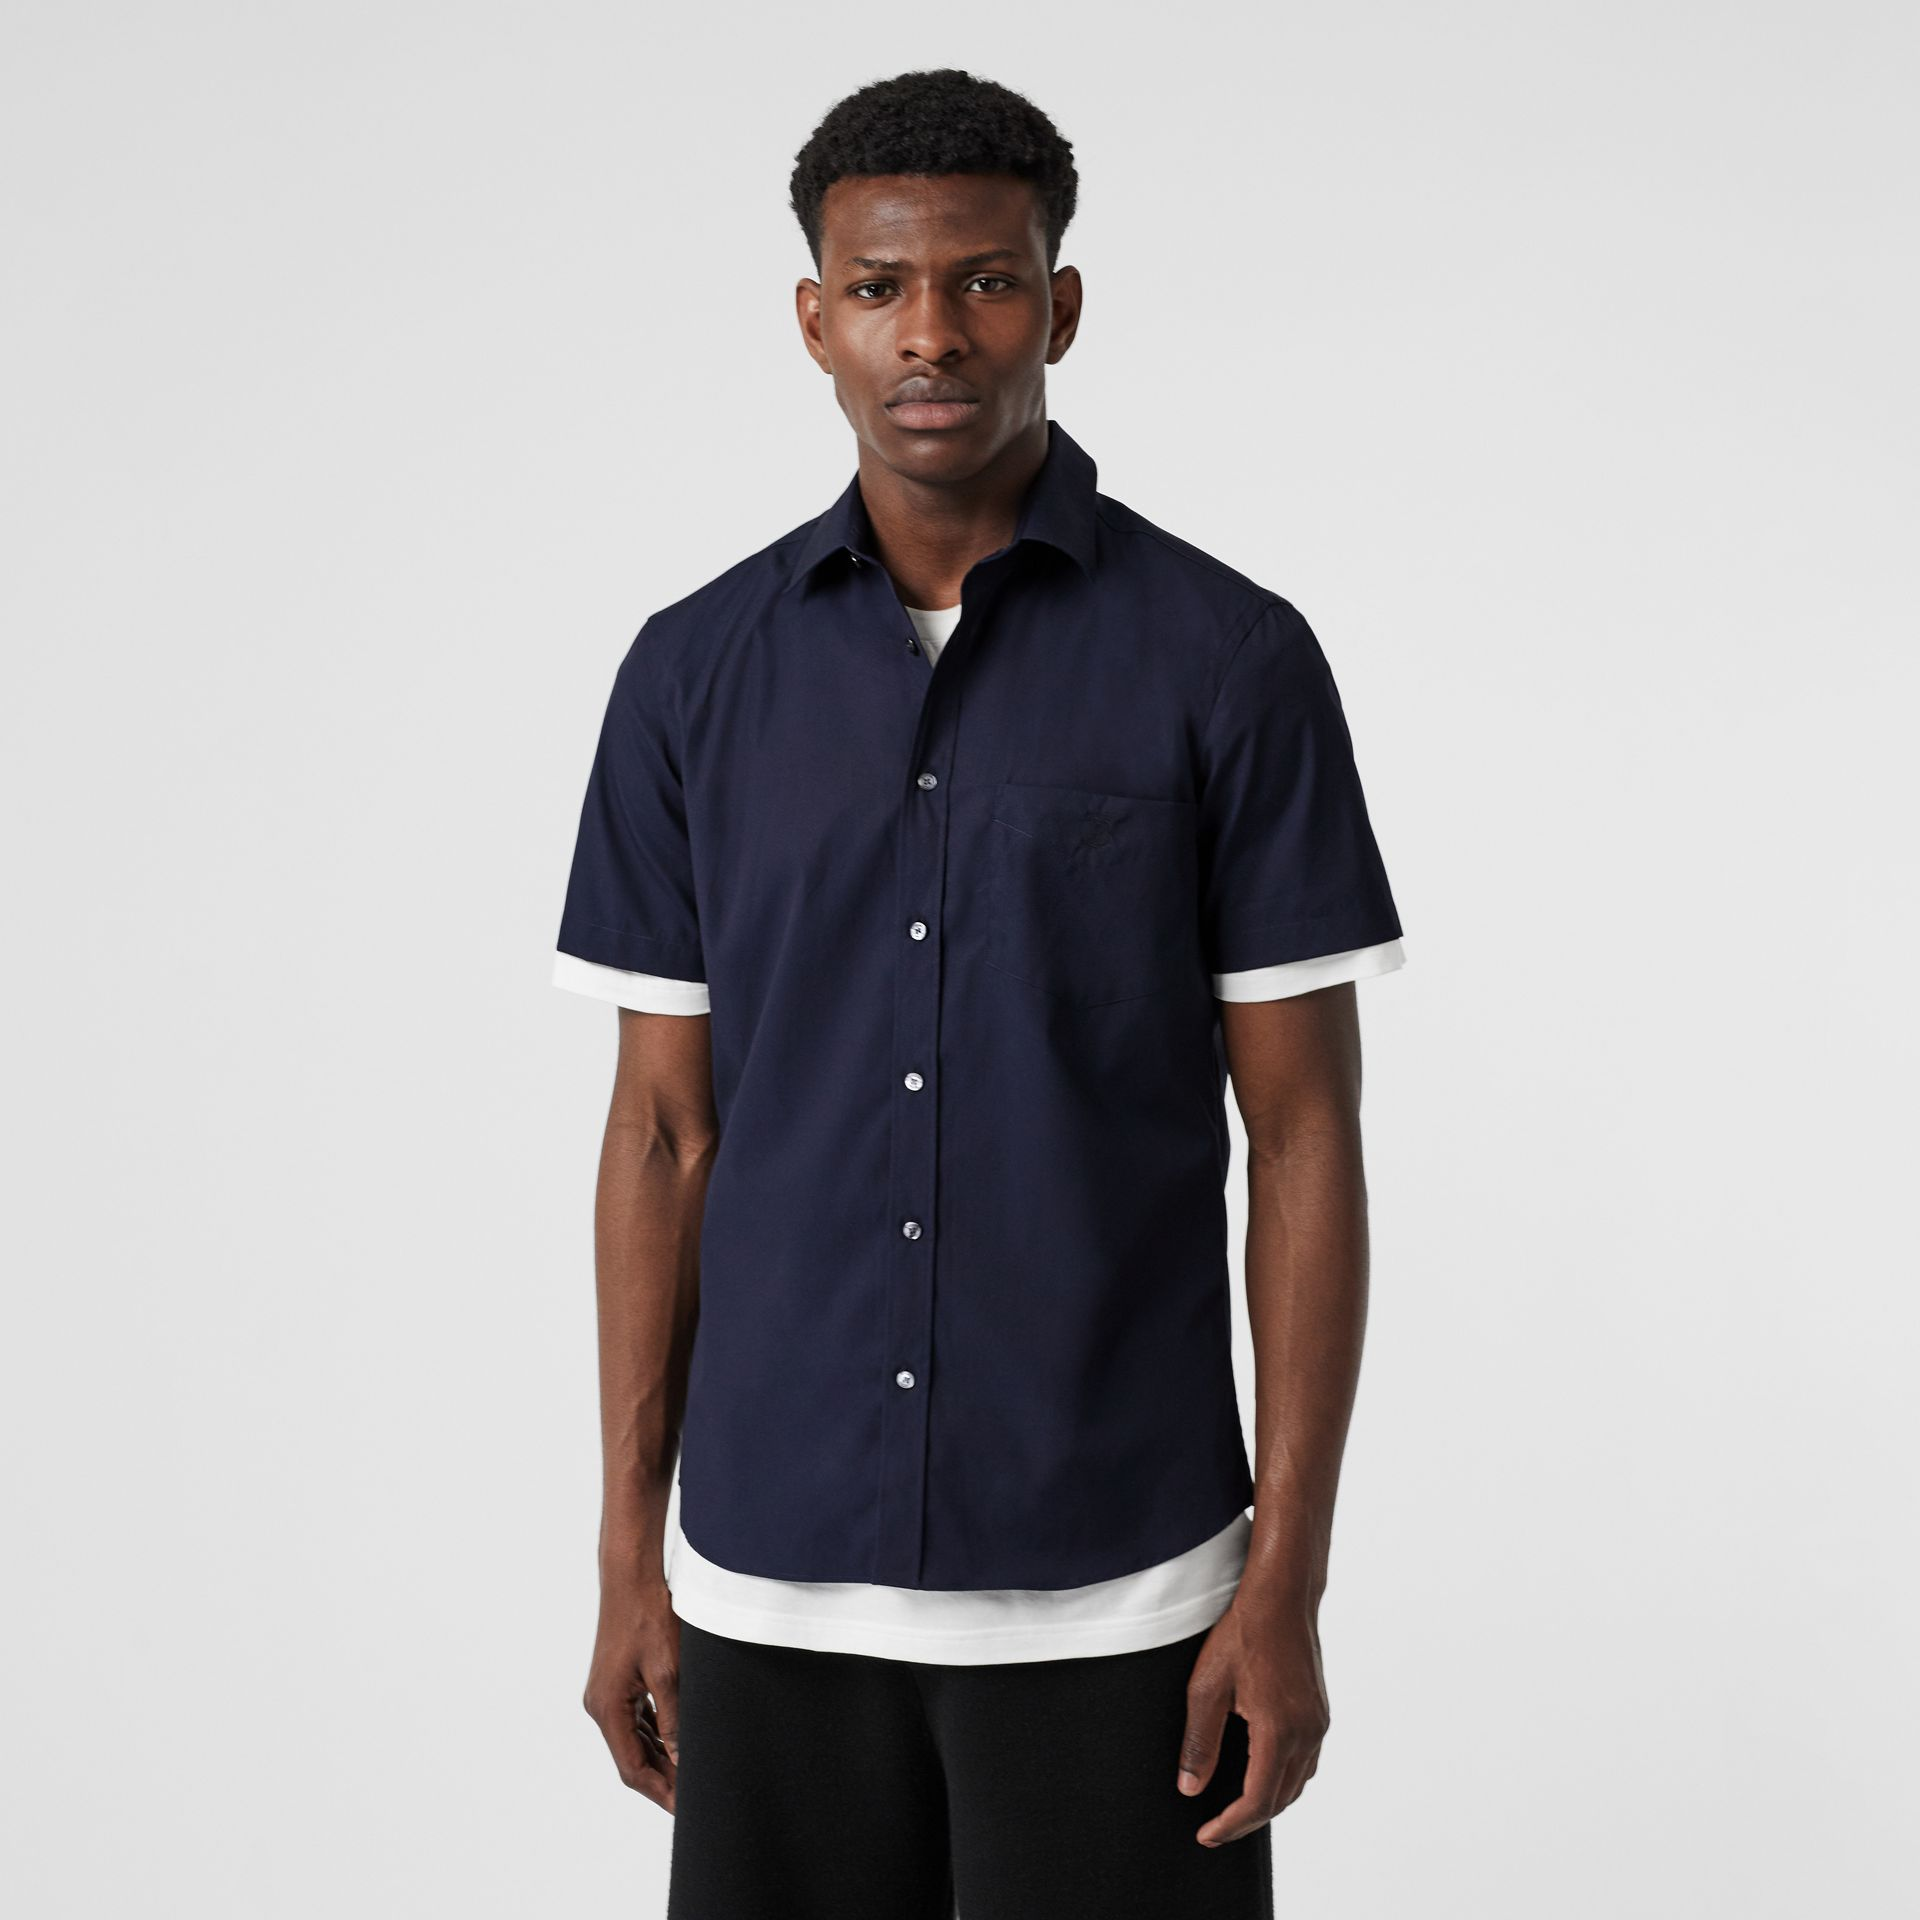 Short-sleeve Monogram Motif Stretch Cotton Shirt in Navy - Men | Burberry Australia - gallery image 4